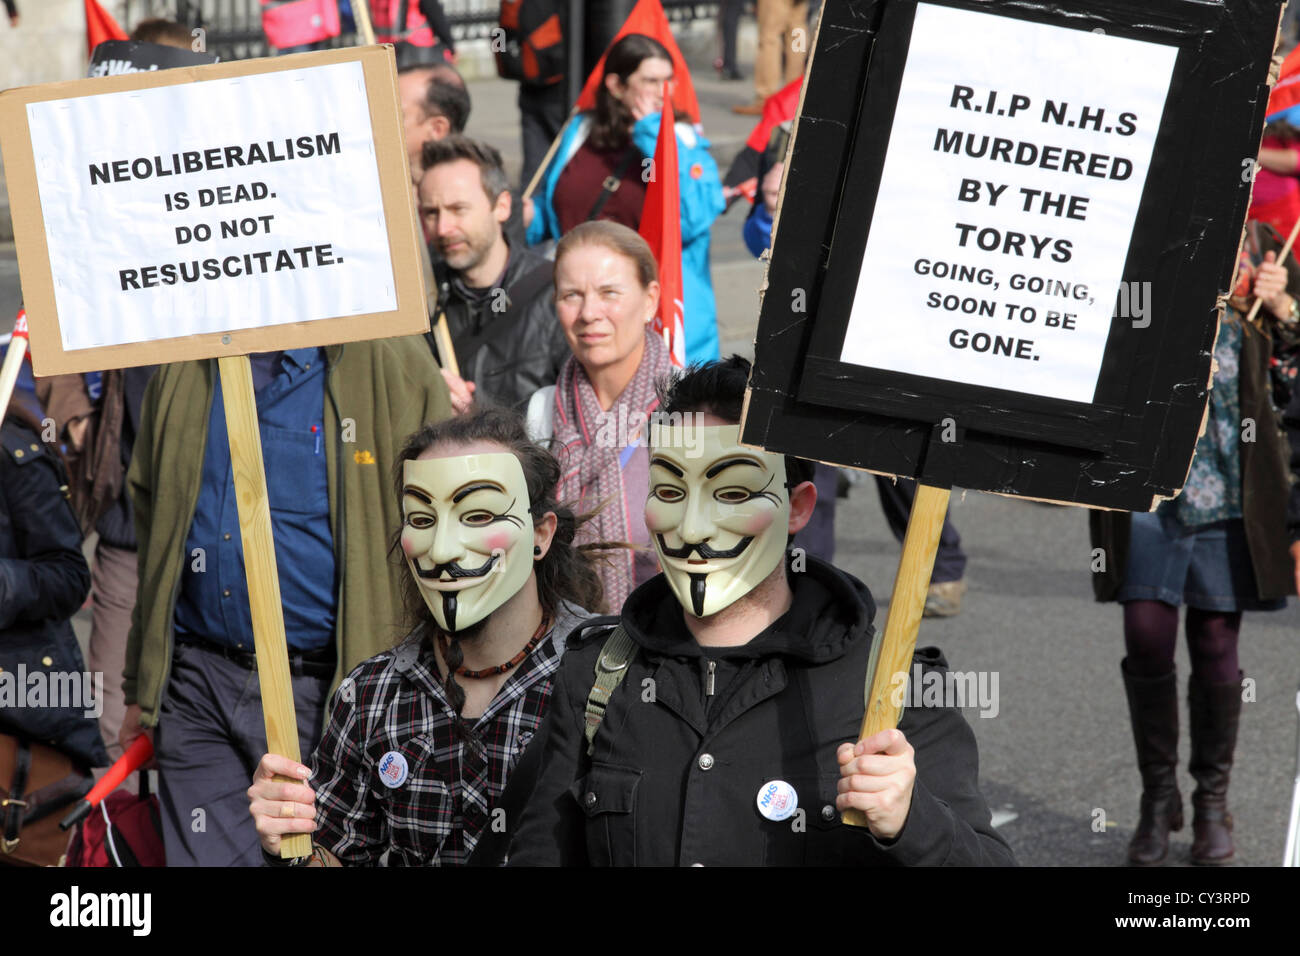 Anonymous marchers at A Future That Works - TUC march & rally, central London. Anti-Cuts anti austerity mass - Stock Image